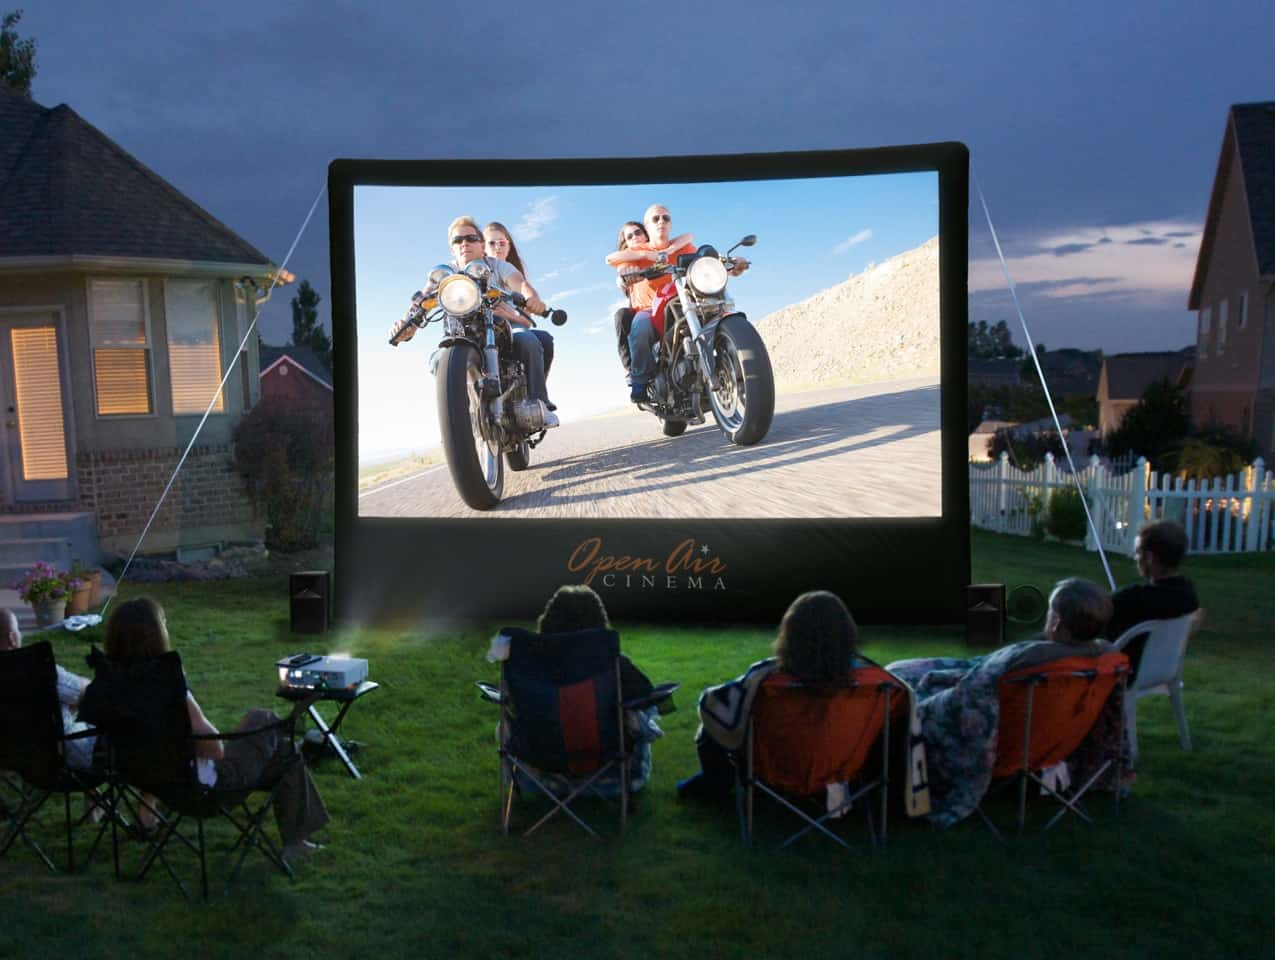 Open Air Cinema CineBox Backyard Movie Family  Bonding Time Large Outdoor TV